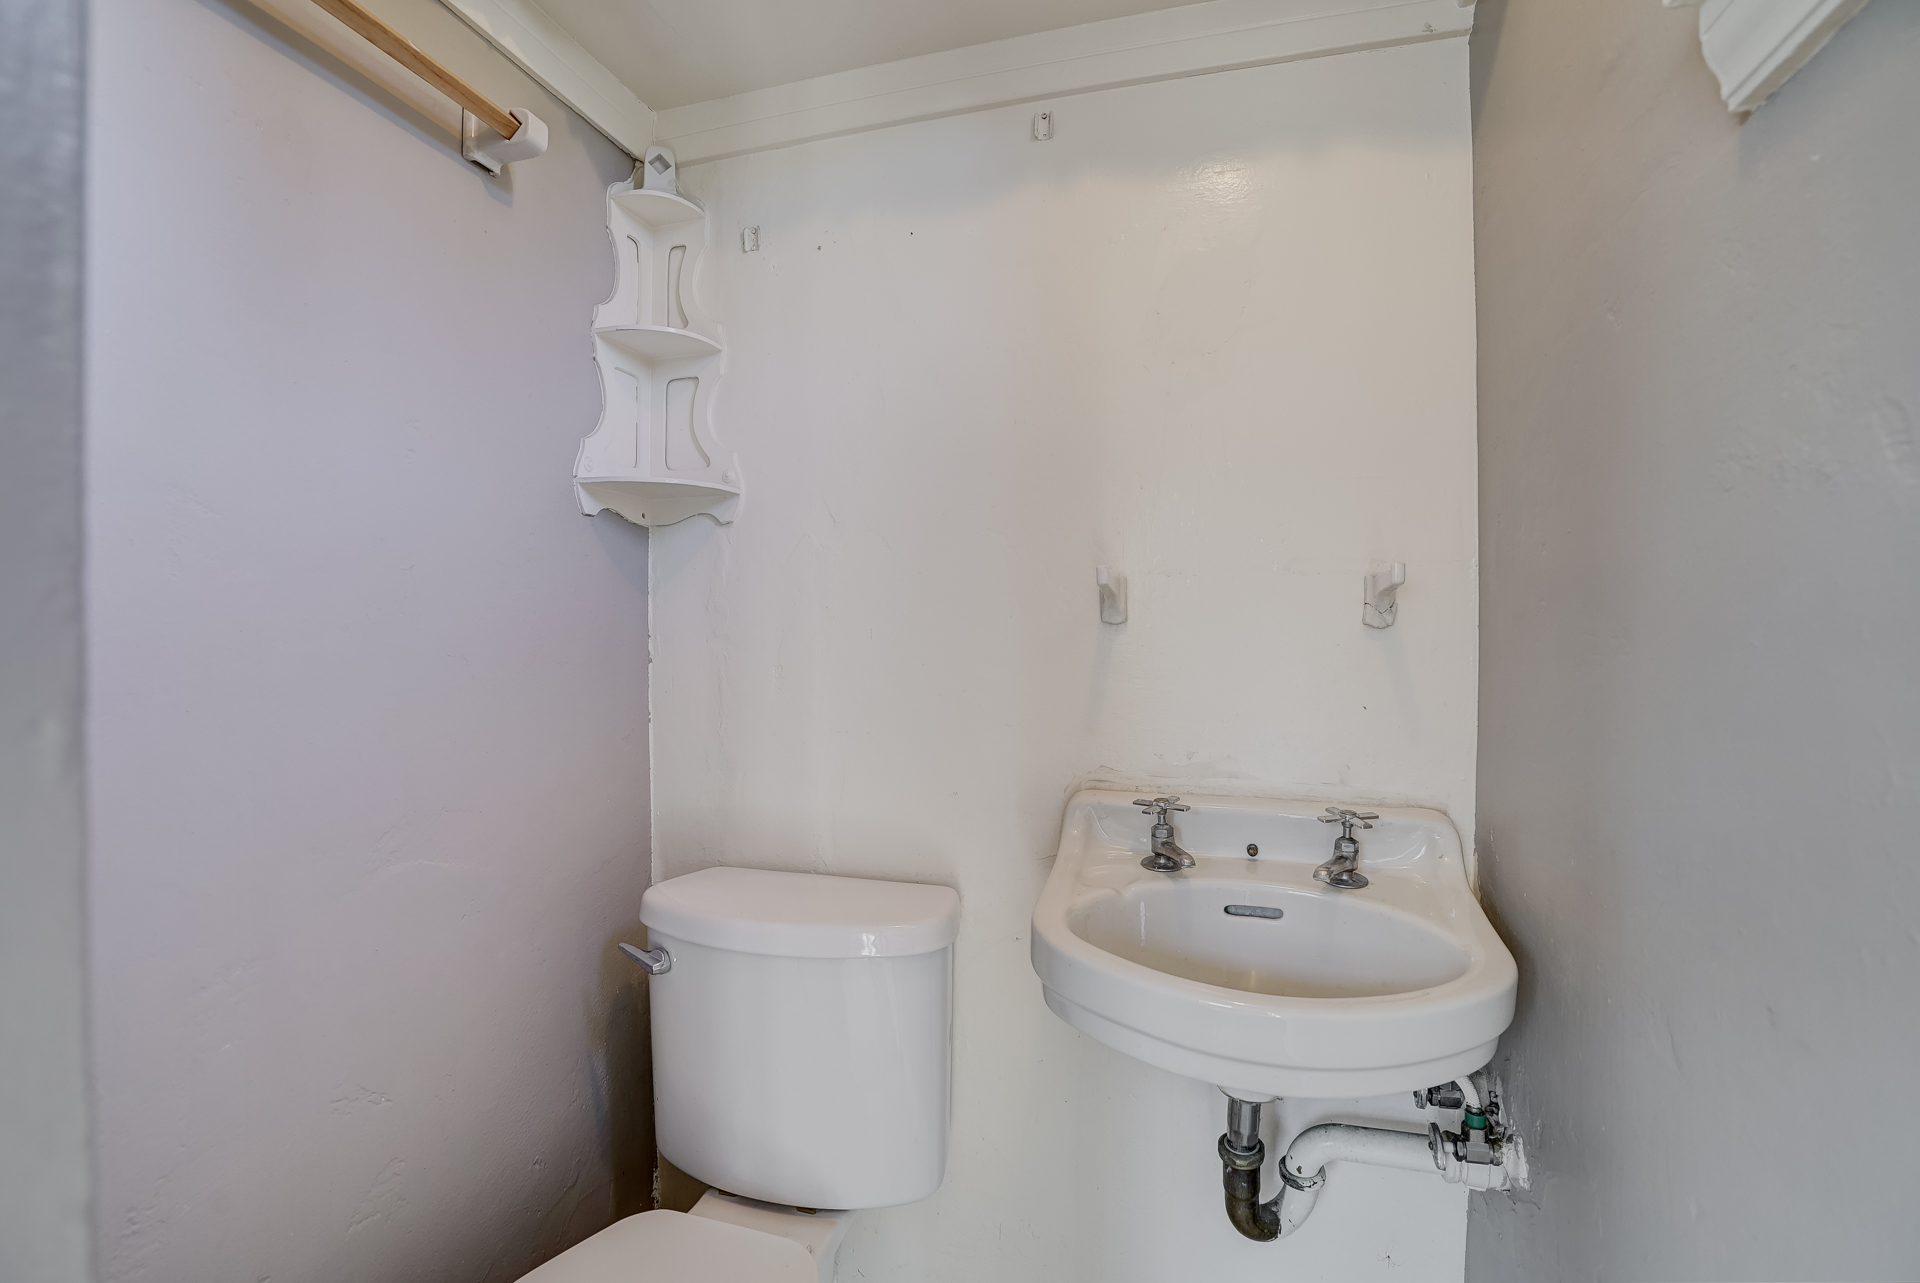 Private upstairs half bath (toilet and sink only).